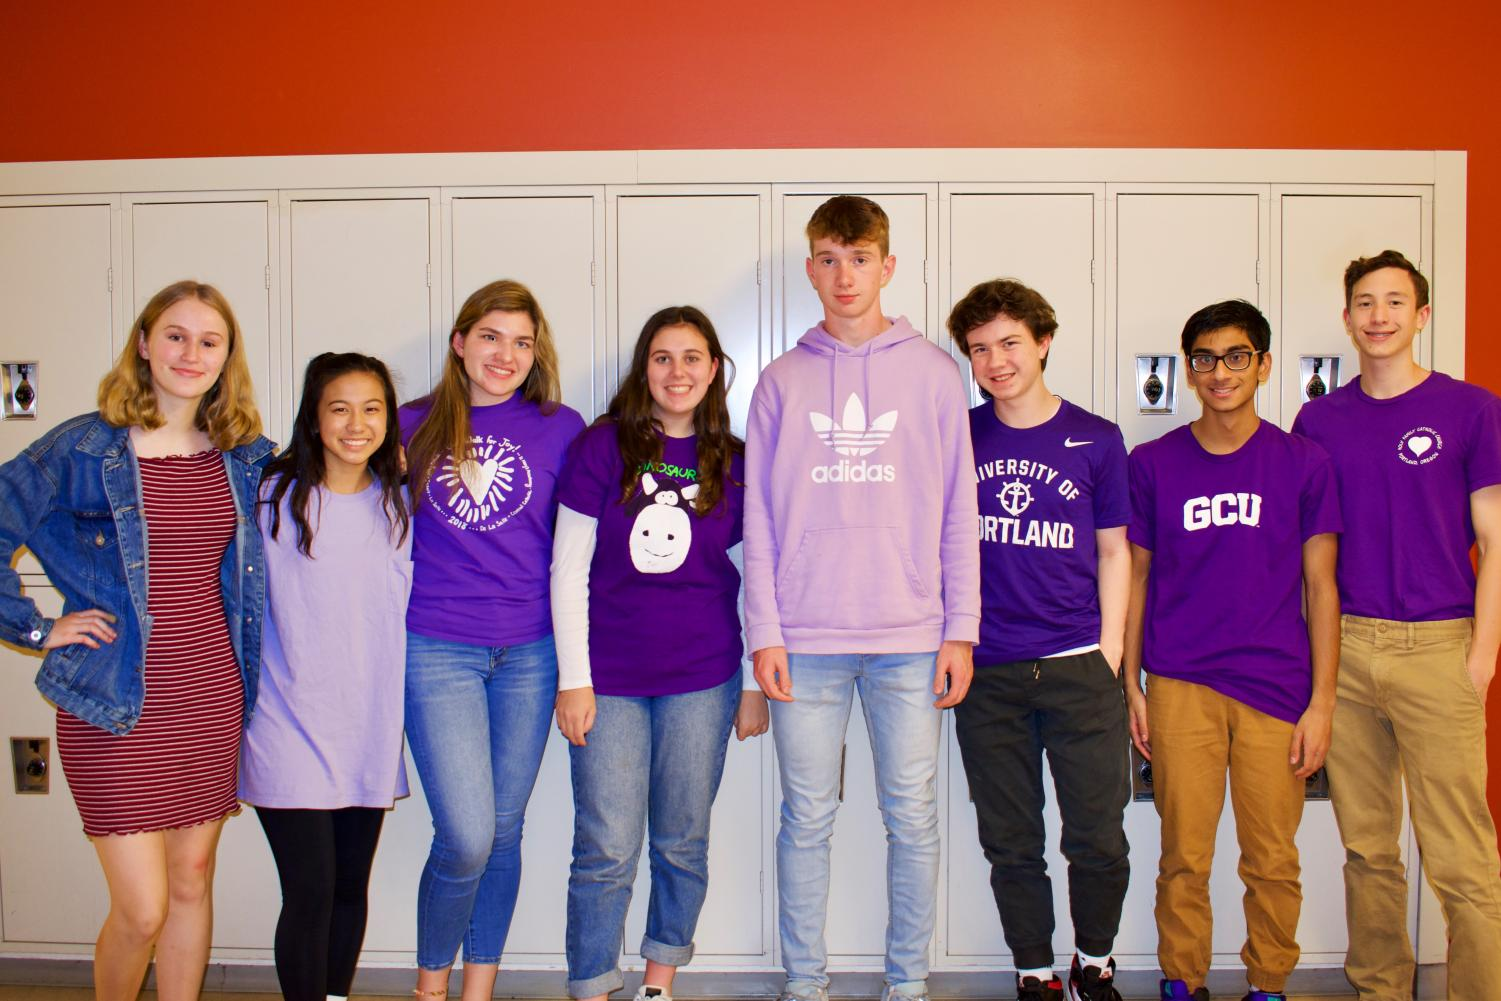 Sophomores+show+off+their+purple+shirts+representing+the+class+of+2022+on+class+colors+day.